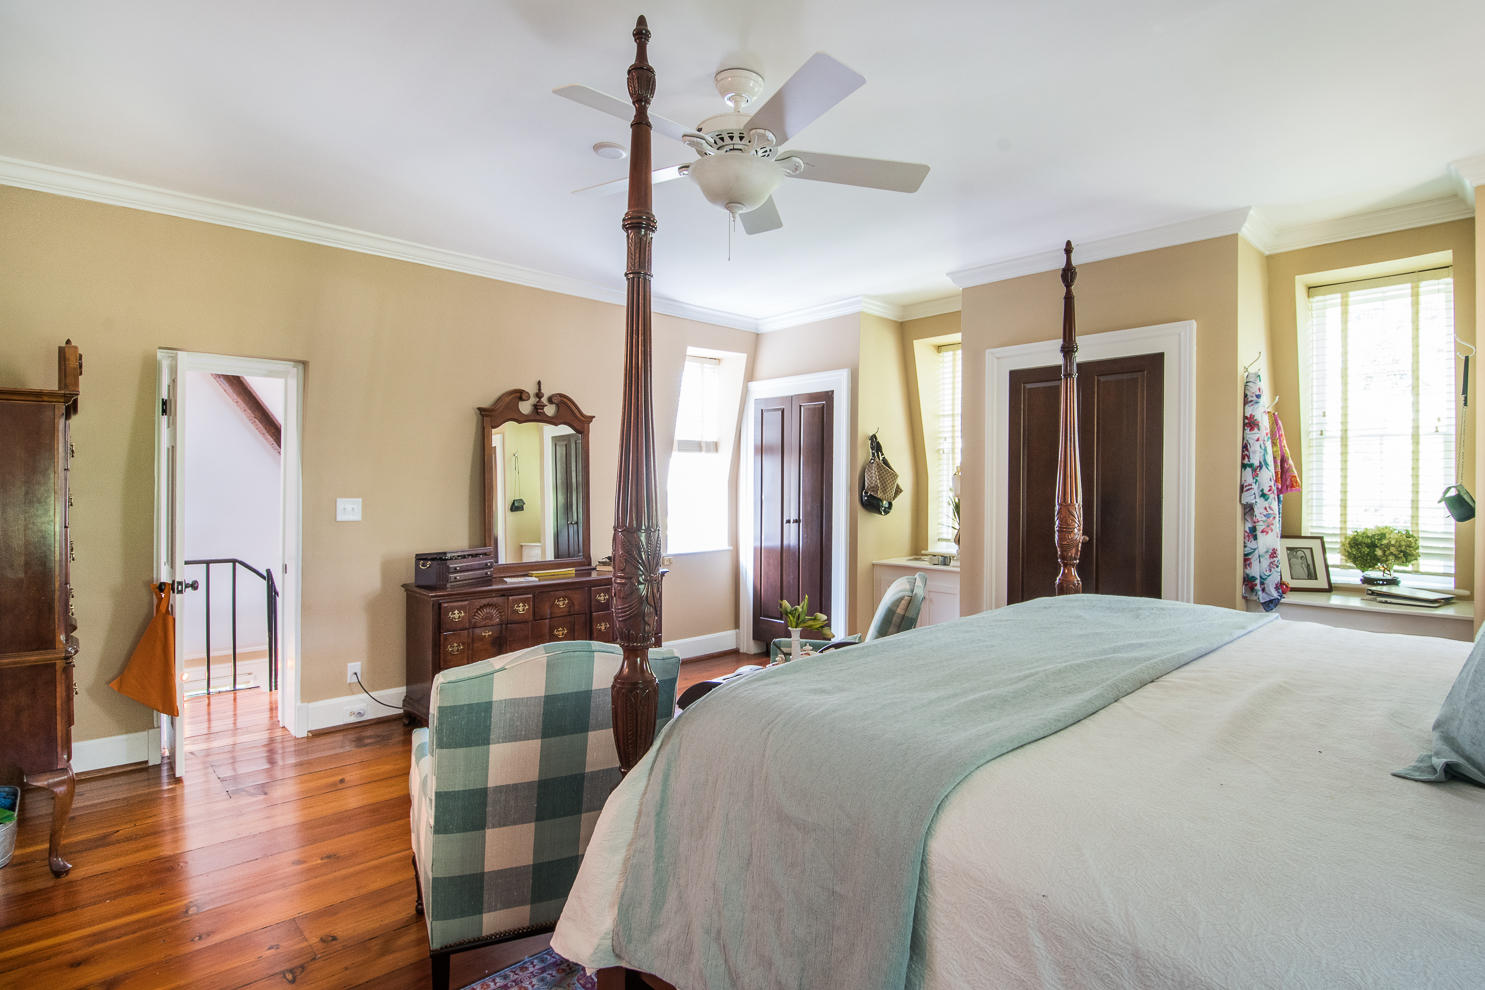 South of Broad Homes For Sale - 1 Prices, Charleston, SC - 28